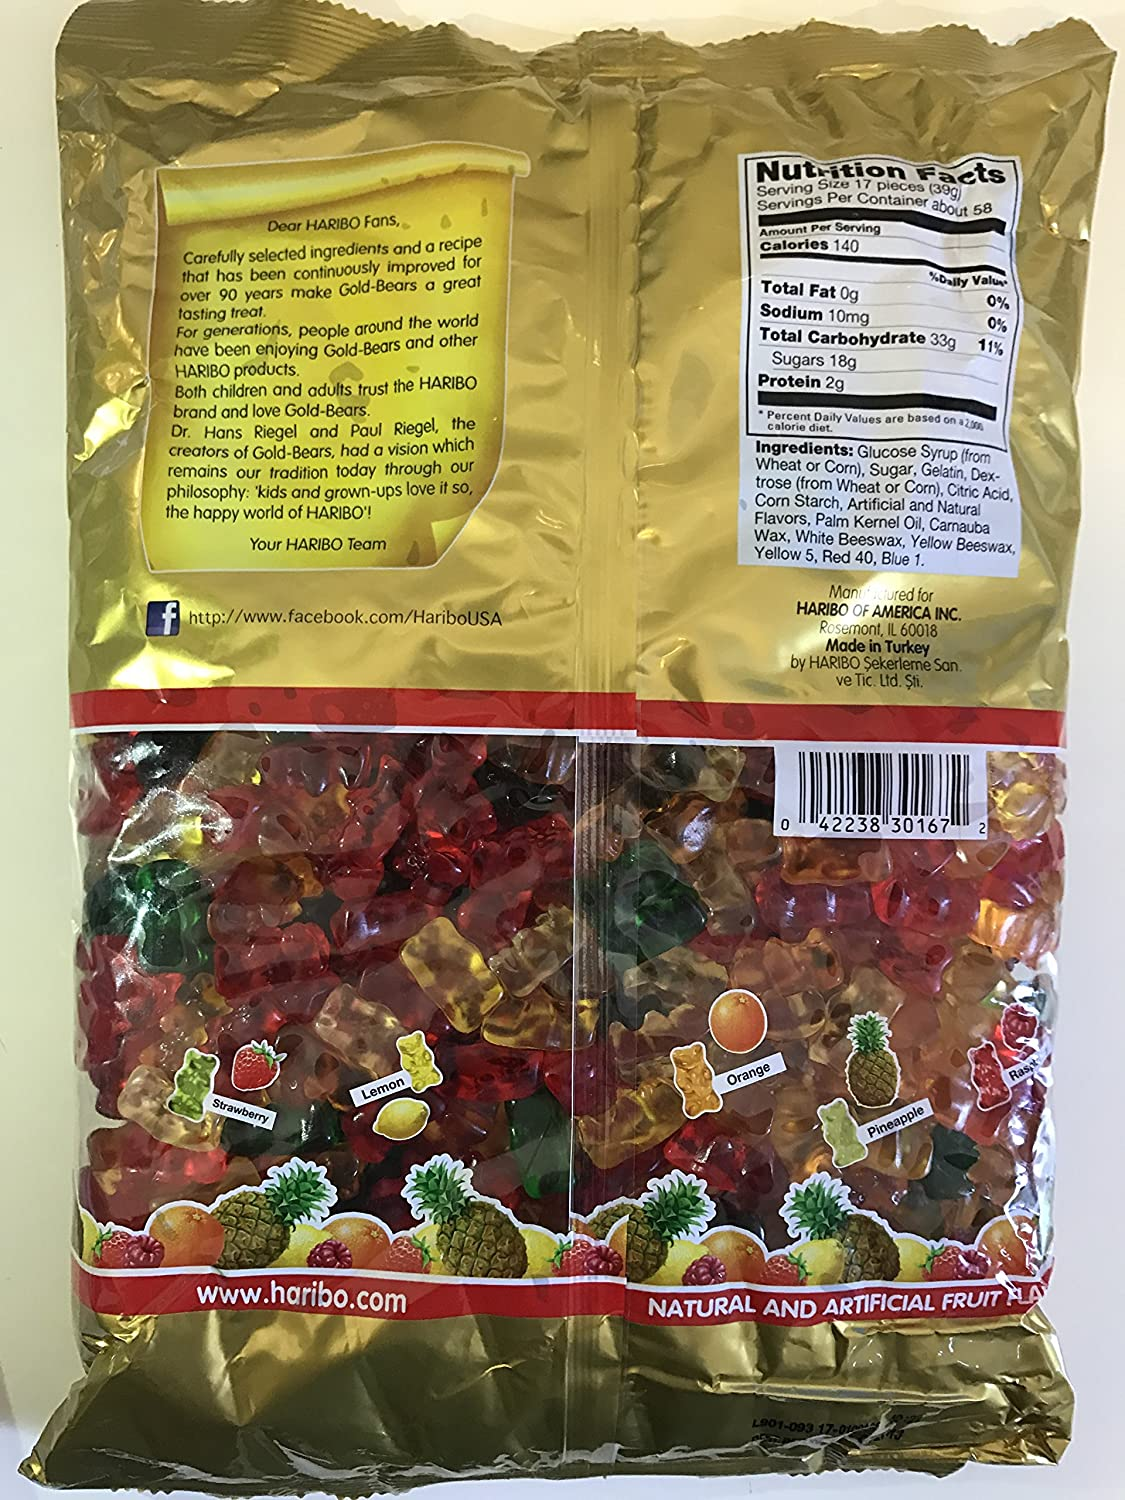 Haribo gummy bears are just one of many products that thomas - 9178ee1bvll _sl1500_ Jpg